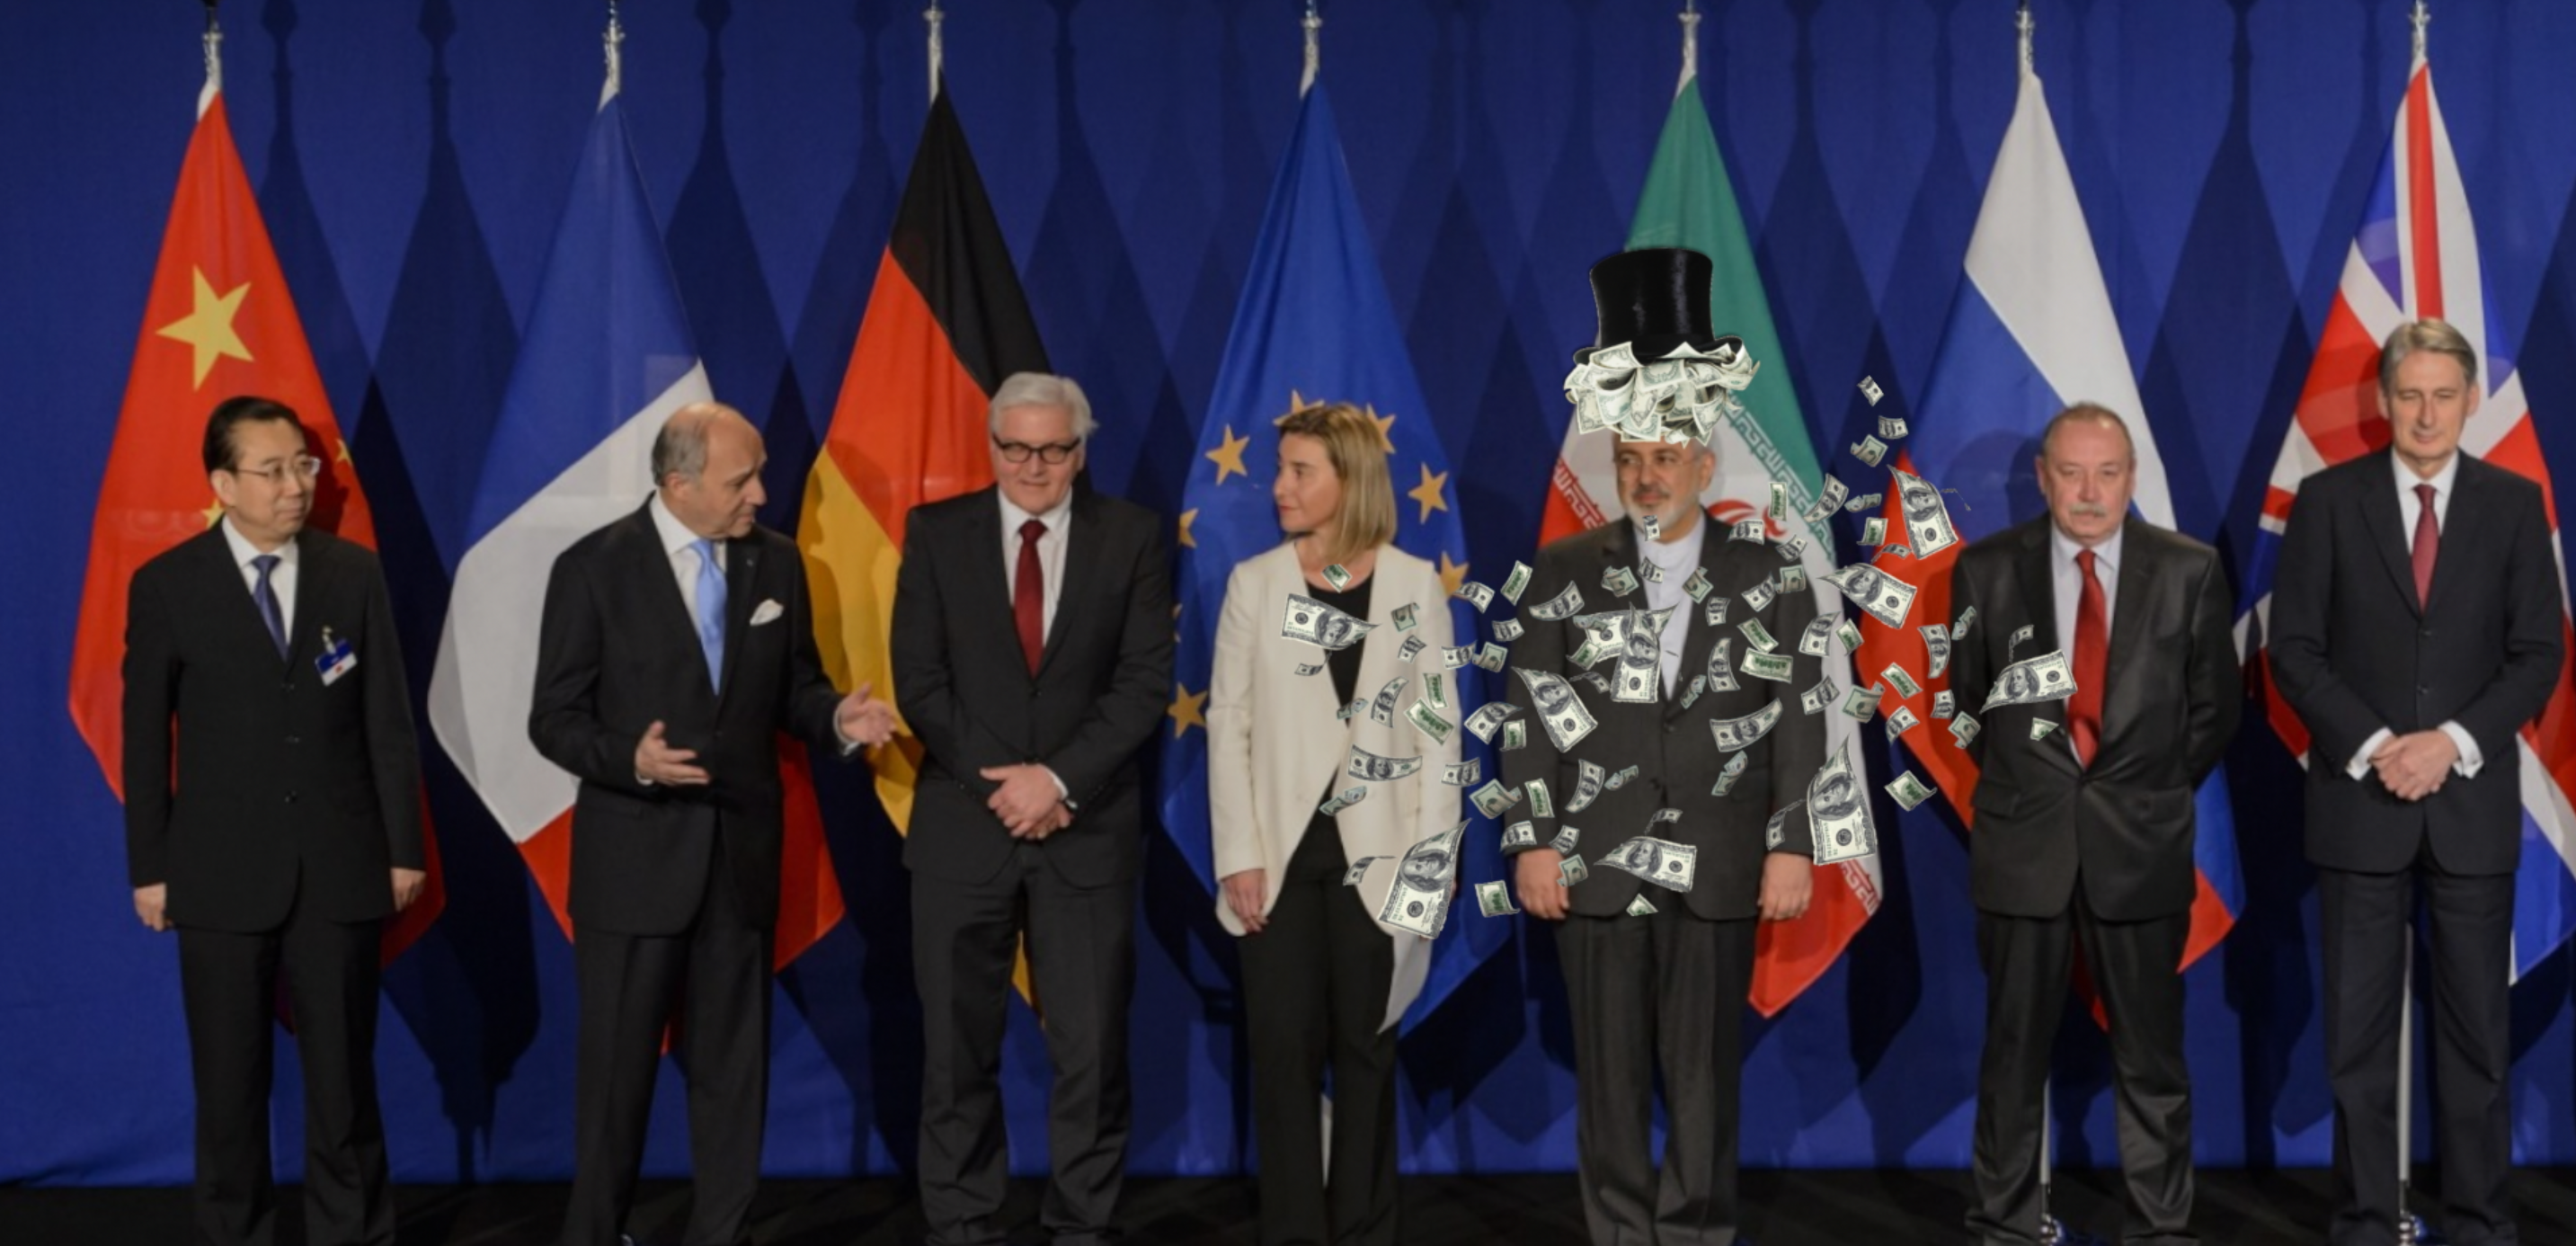 Europe Appeases Iran